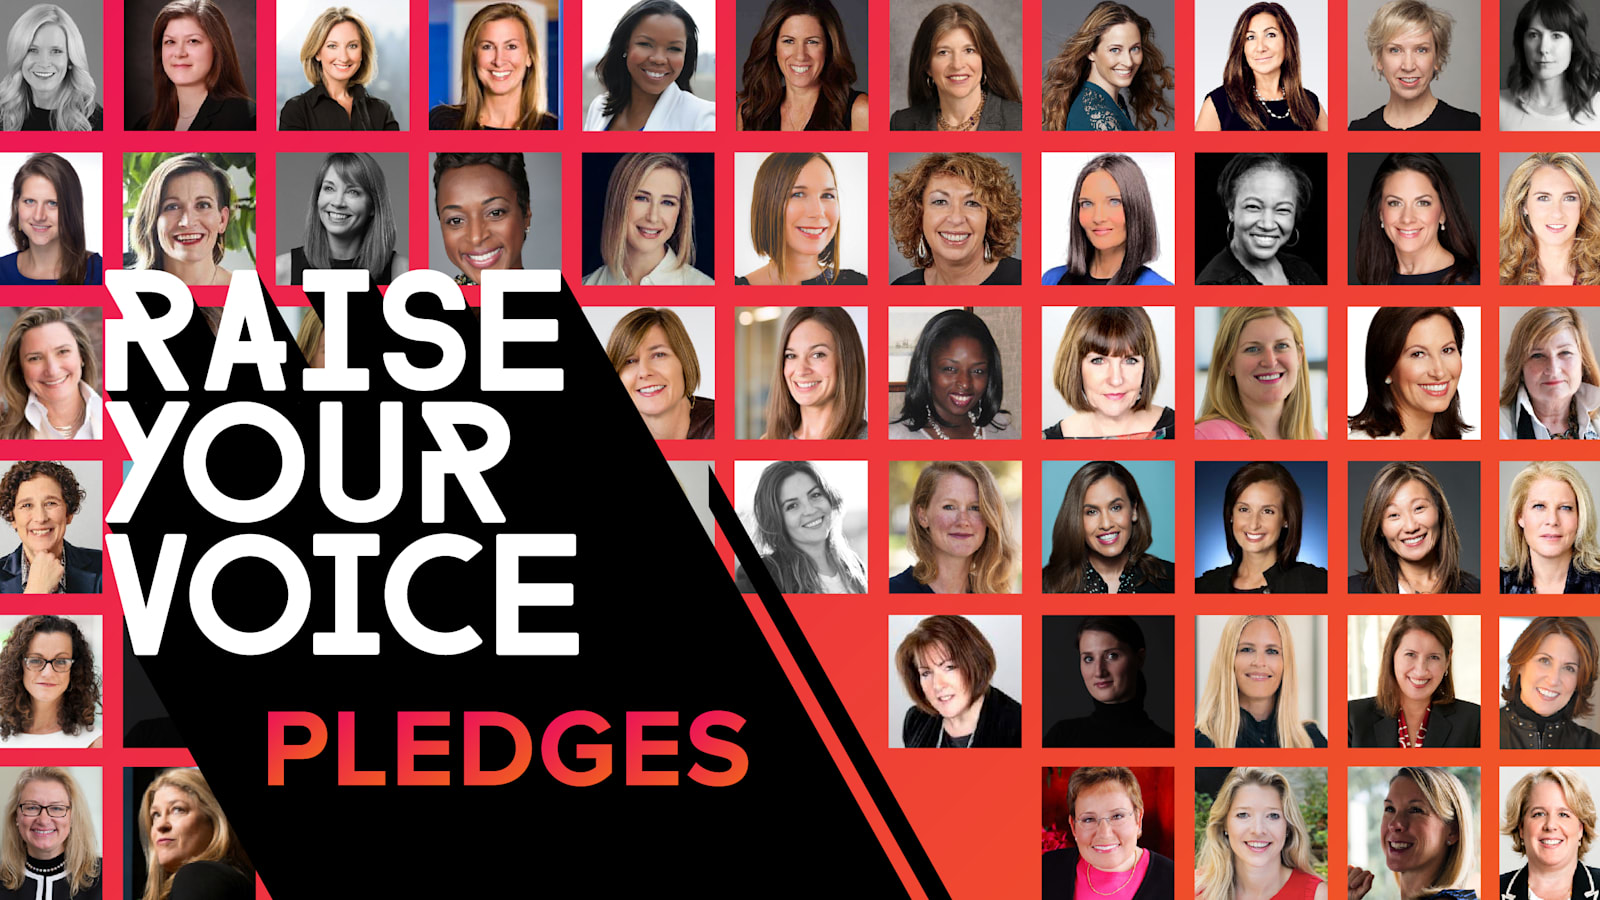 More Than 40 Companies Pledge to Advance Women